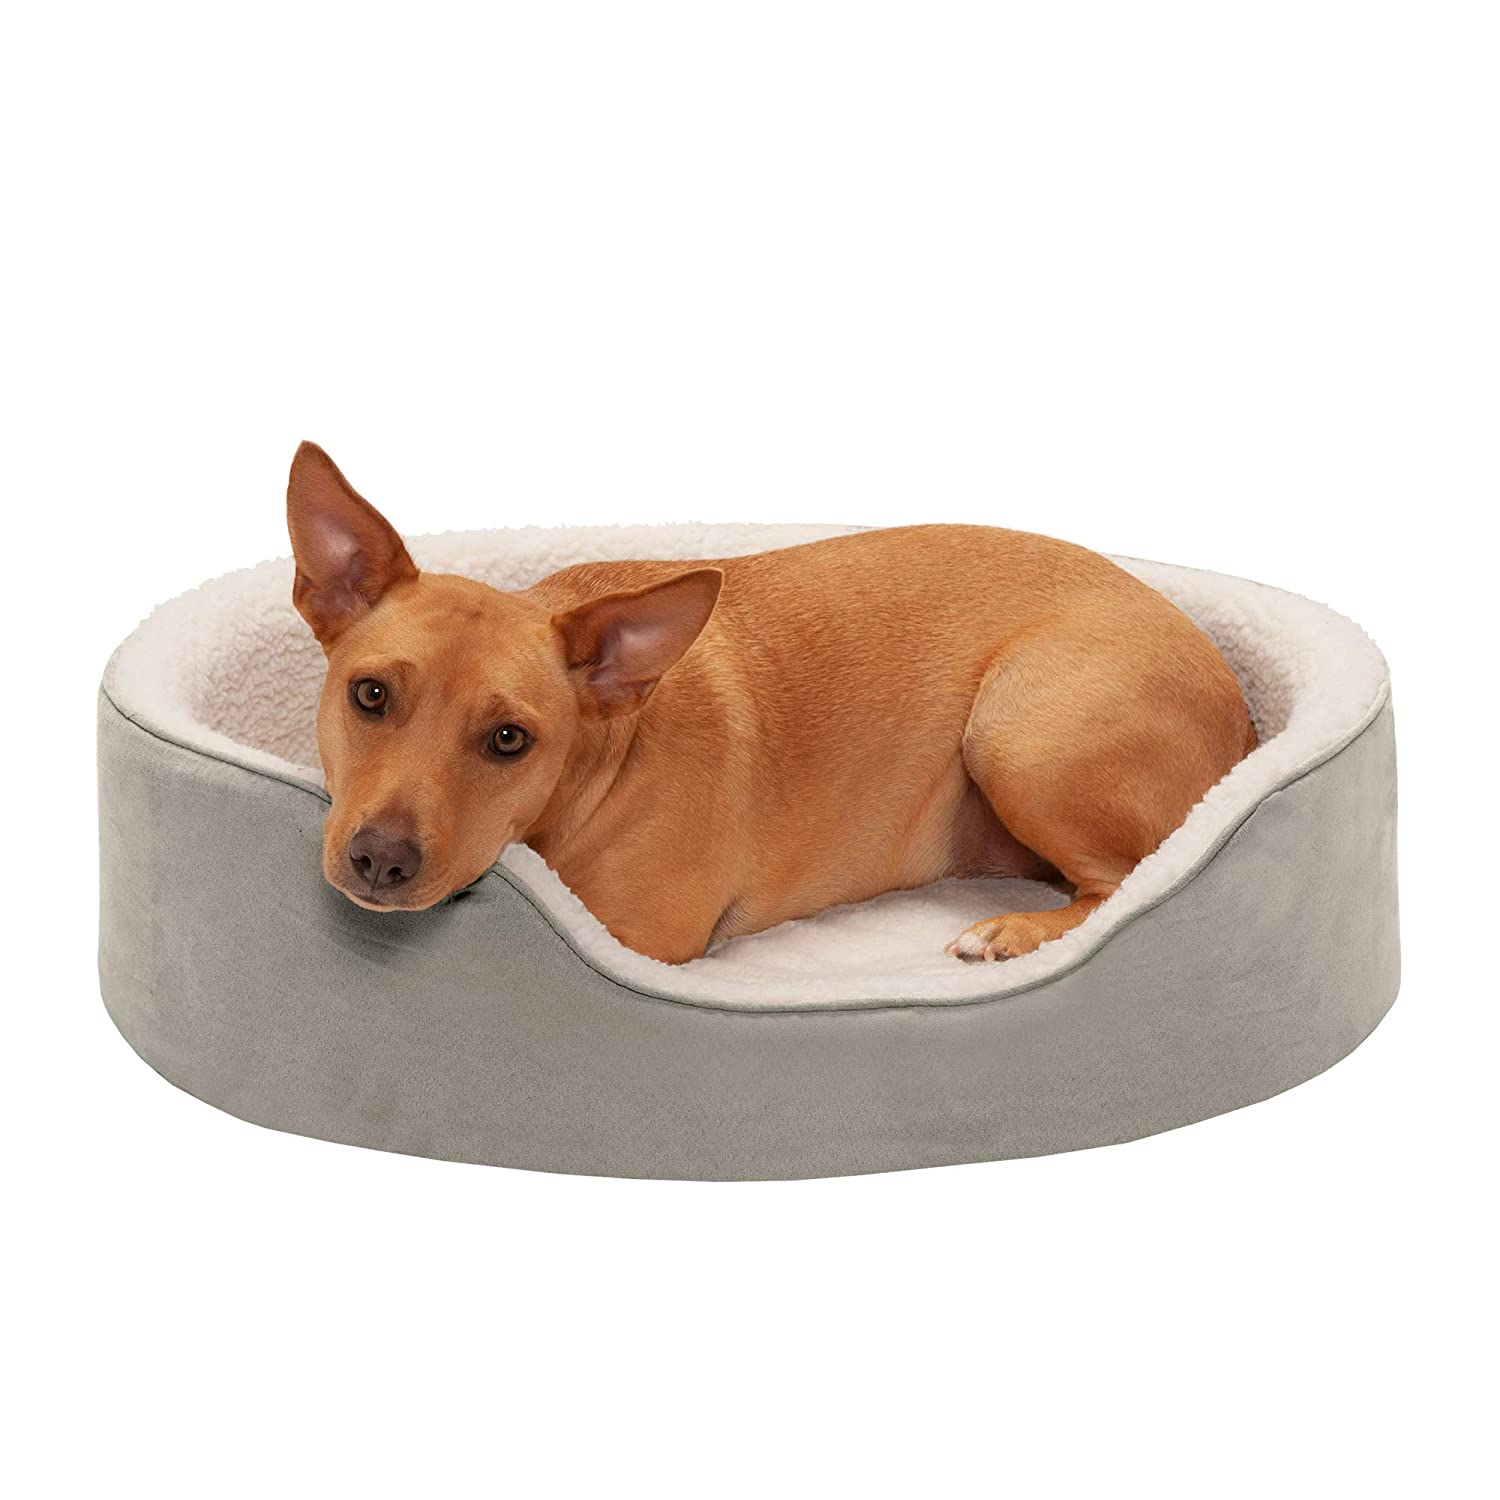 Furhaven Pet Dog Bed Round Oval Cuddler Nest Lounger Pet Bed for Dogs Cats – Available in Multiple Colors Styles